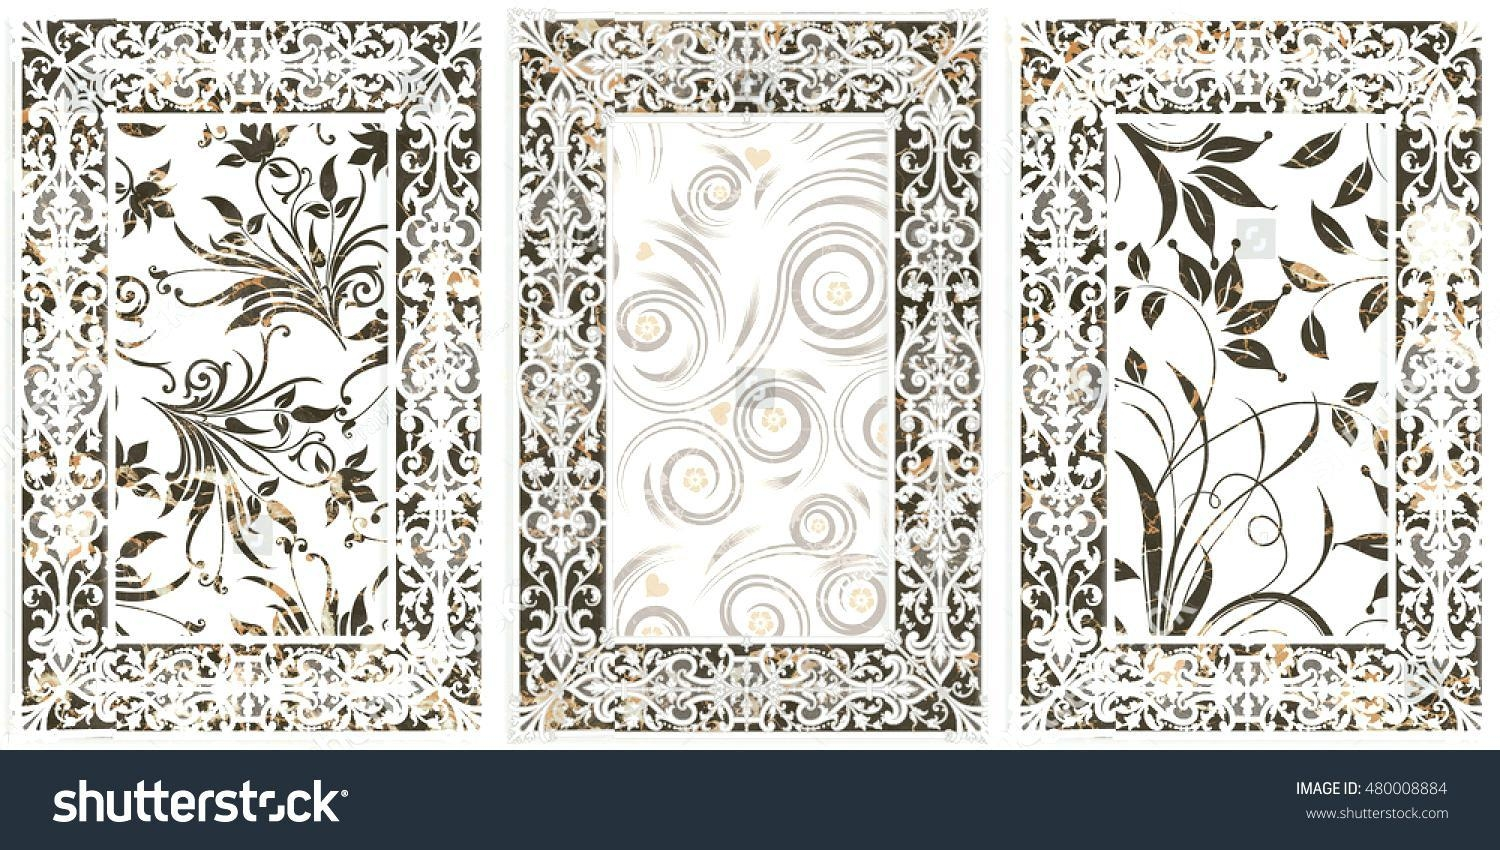 Wall Ideas : Marble Wall Art Marble Run Wall Art Autumnal Day Intended For Italian Mosaic Wall Art (Image 17 of 20)